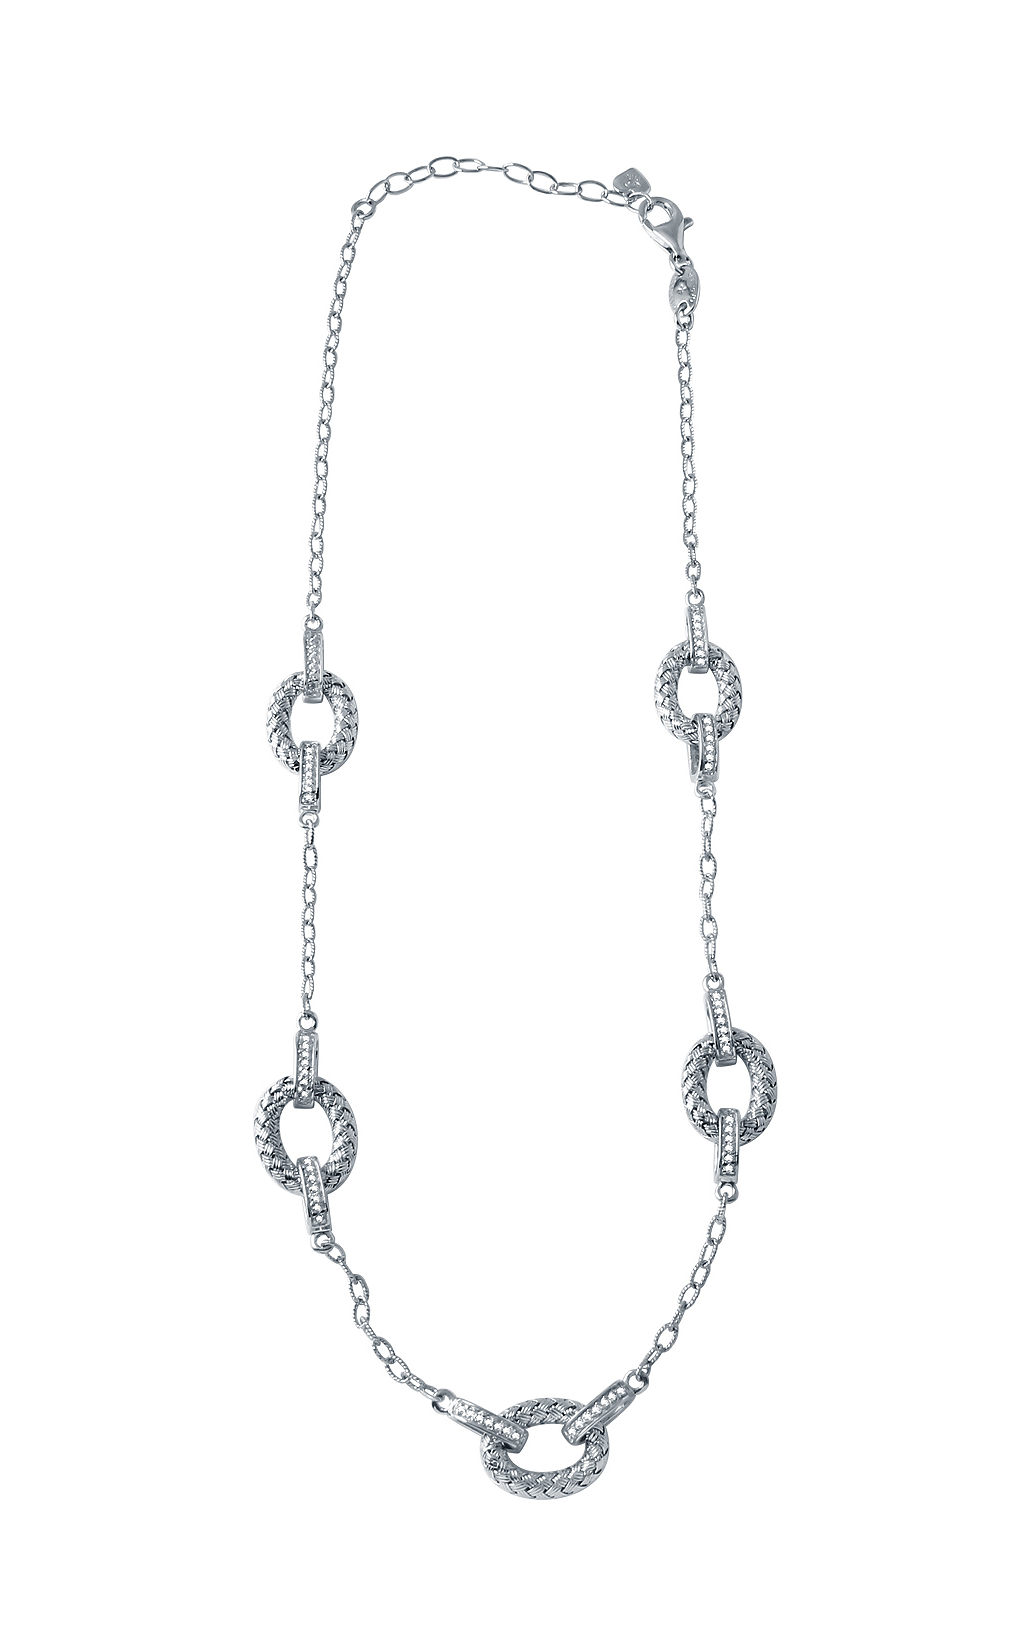 Charles Garnier Necklace Paolo Collection MLN8202WZ17 product image